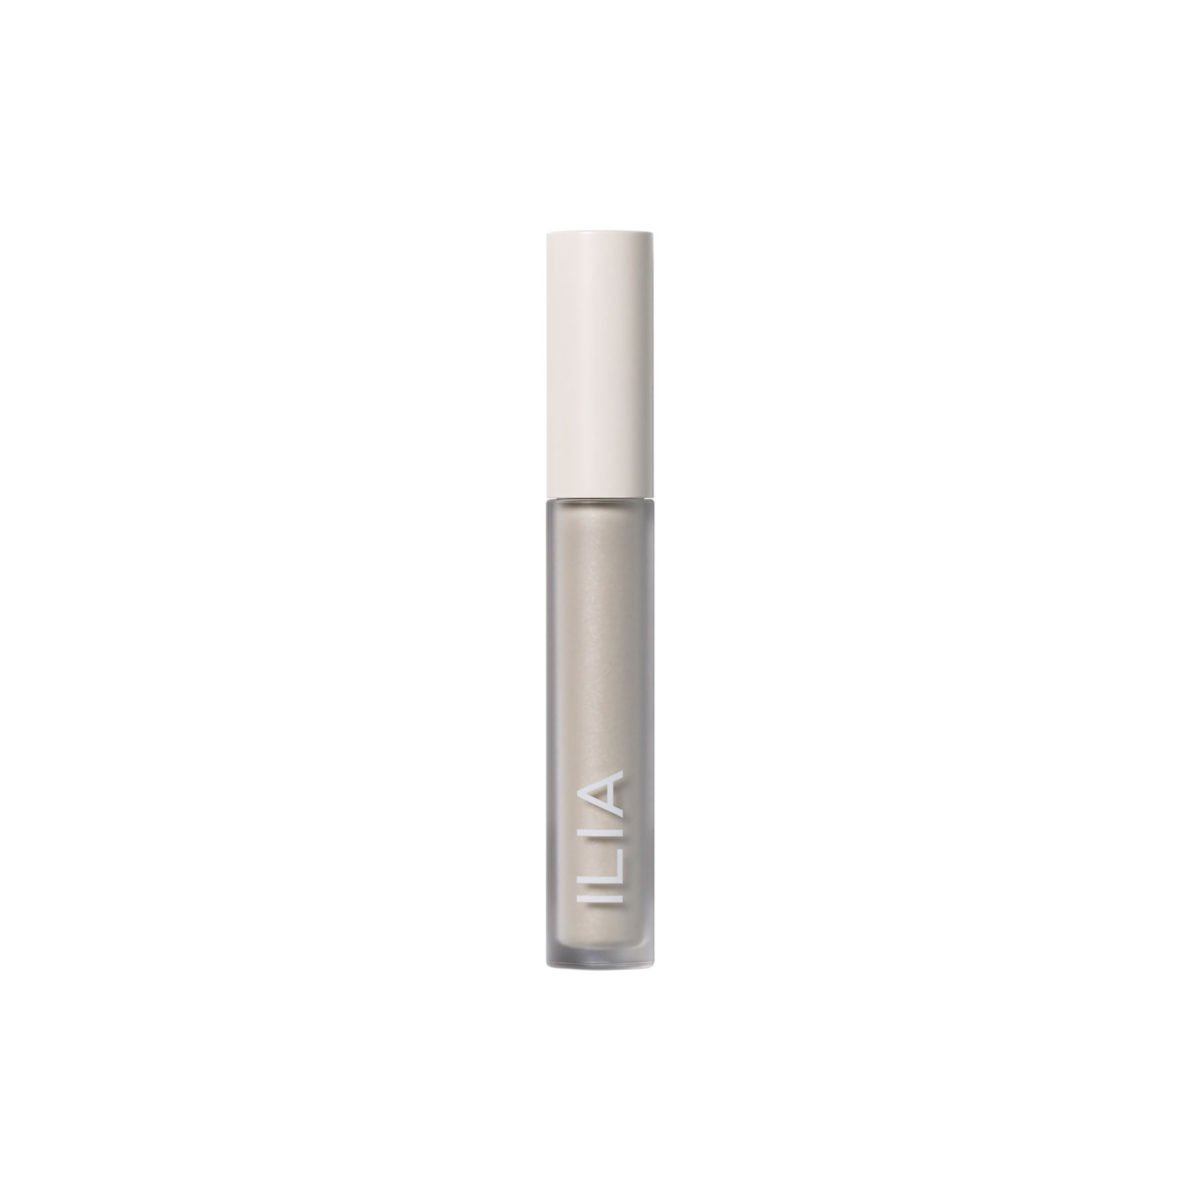 Ilia Brightening Eye Primer